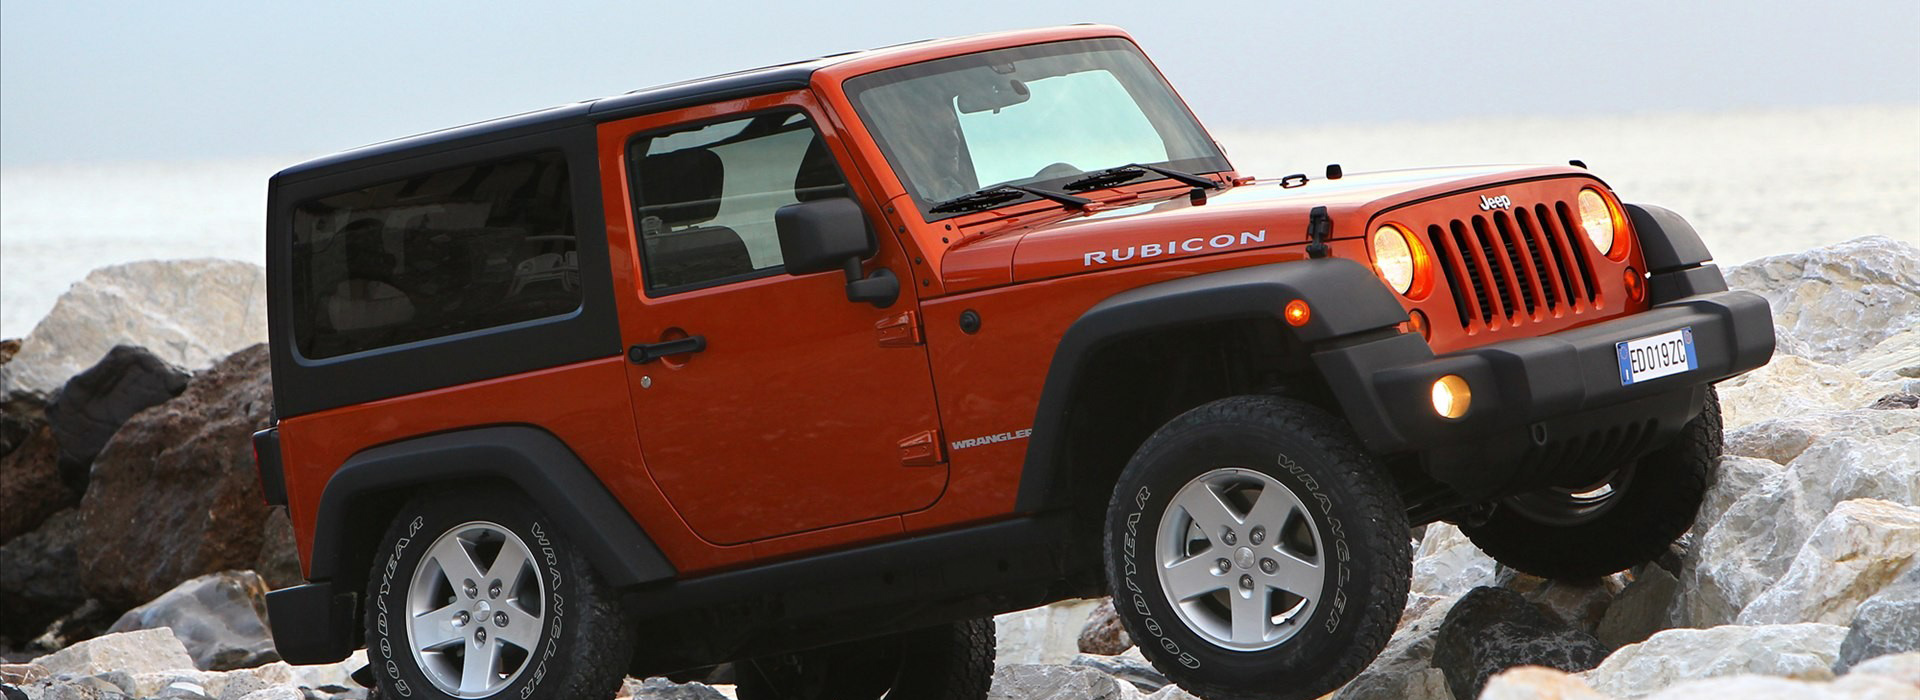 Erickson's Automotive is a Jeep specialist. Quality Jeep repair at Erickson's Automotive.